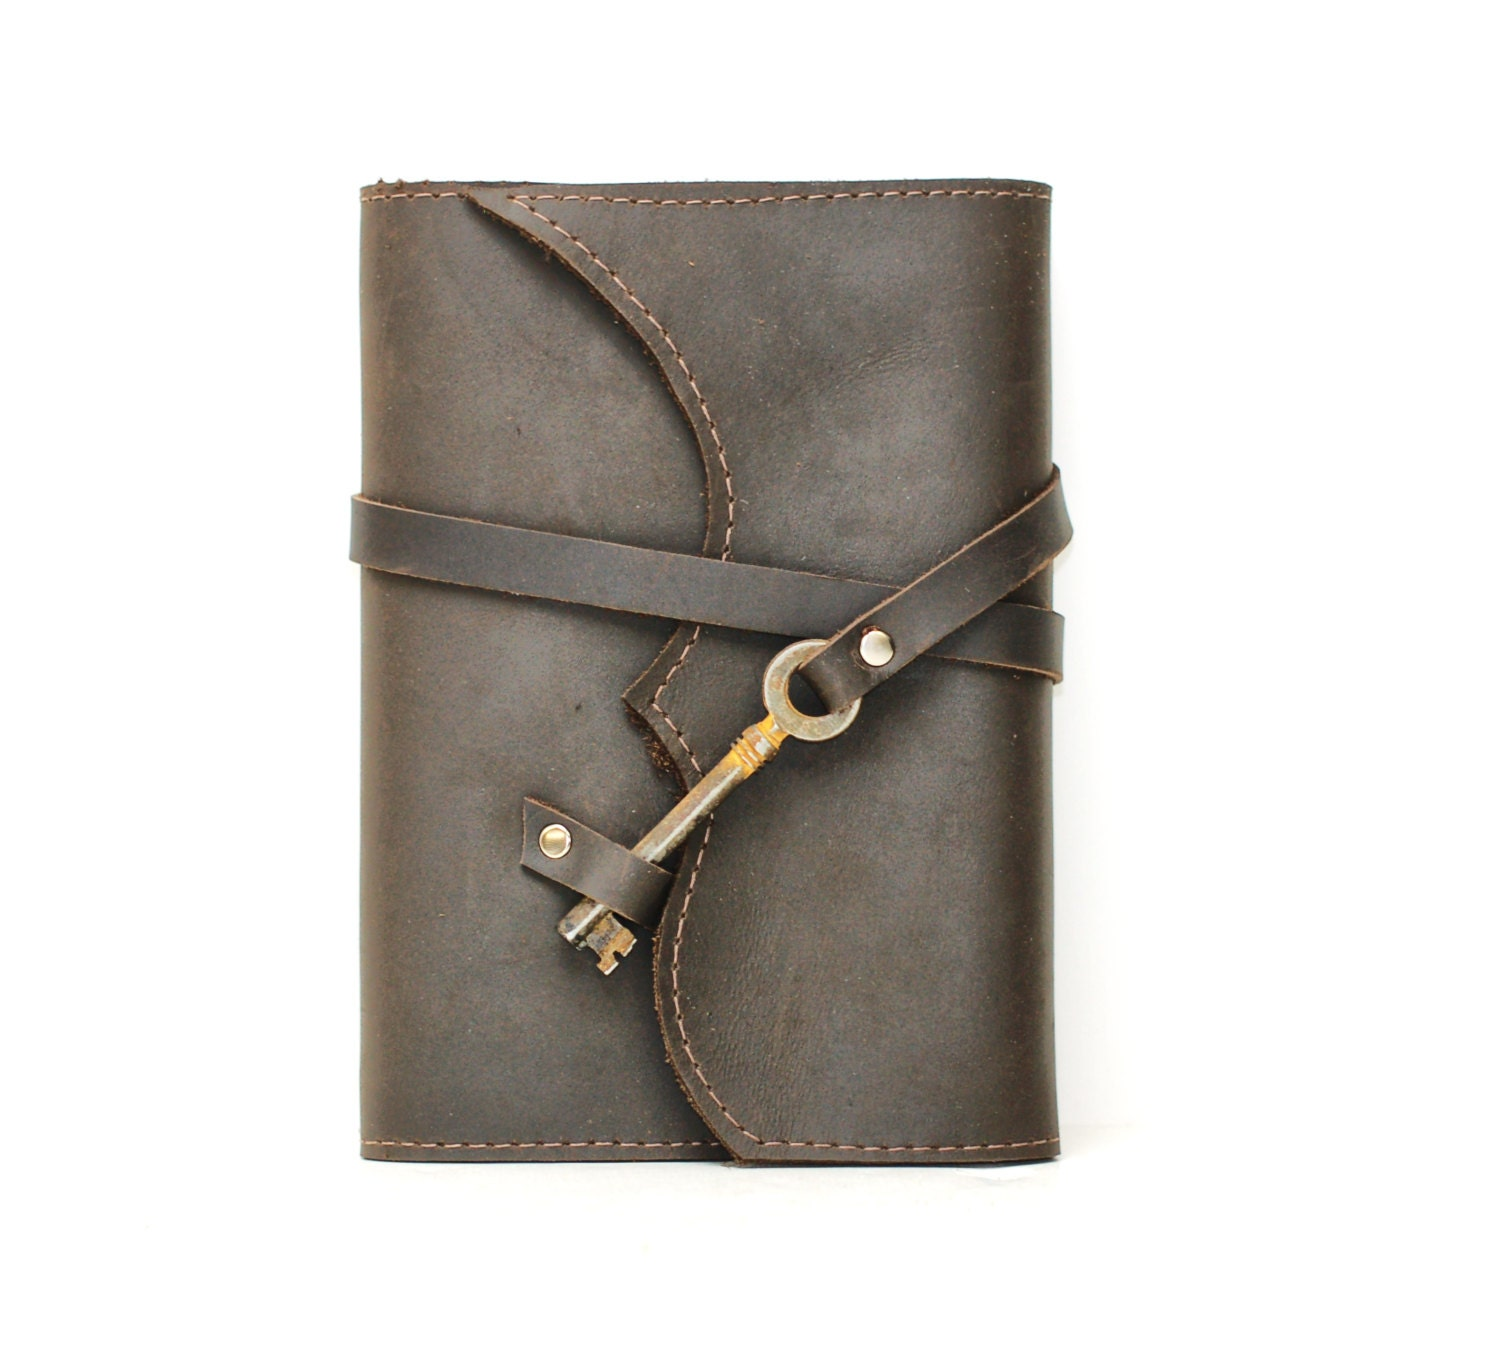 How To Make A Book Cover Leather ~ Distressed brown leather book cover notebook